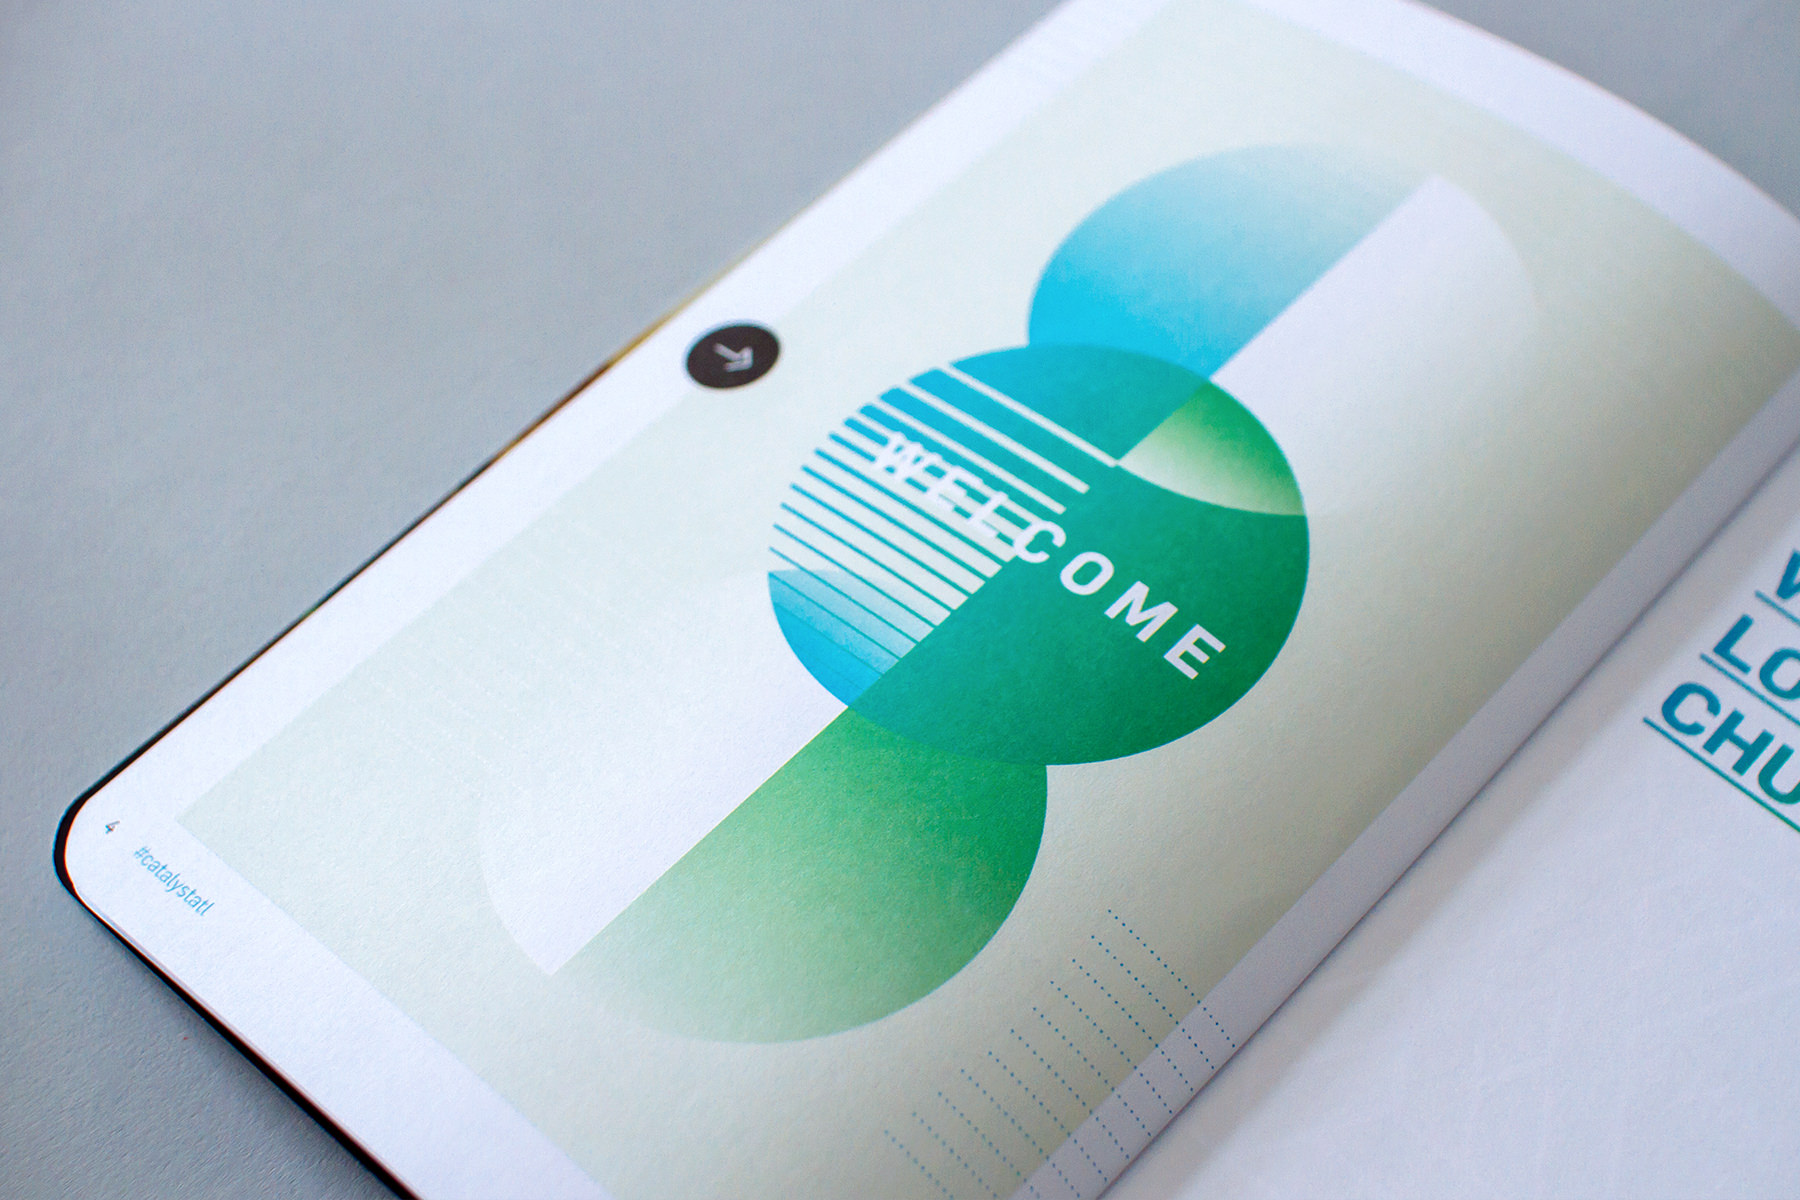 Editorial and layout graphic design of the welcome letter for the Catalyst Conference 2016 uncommon fellowship event notebook branding design.